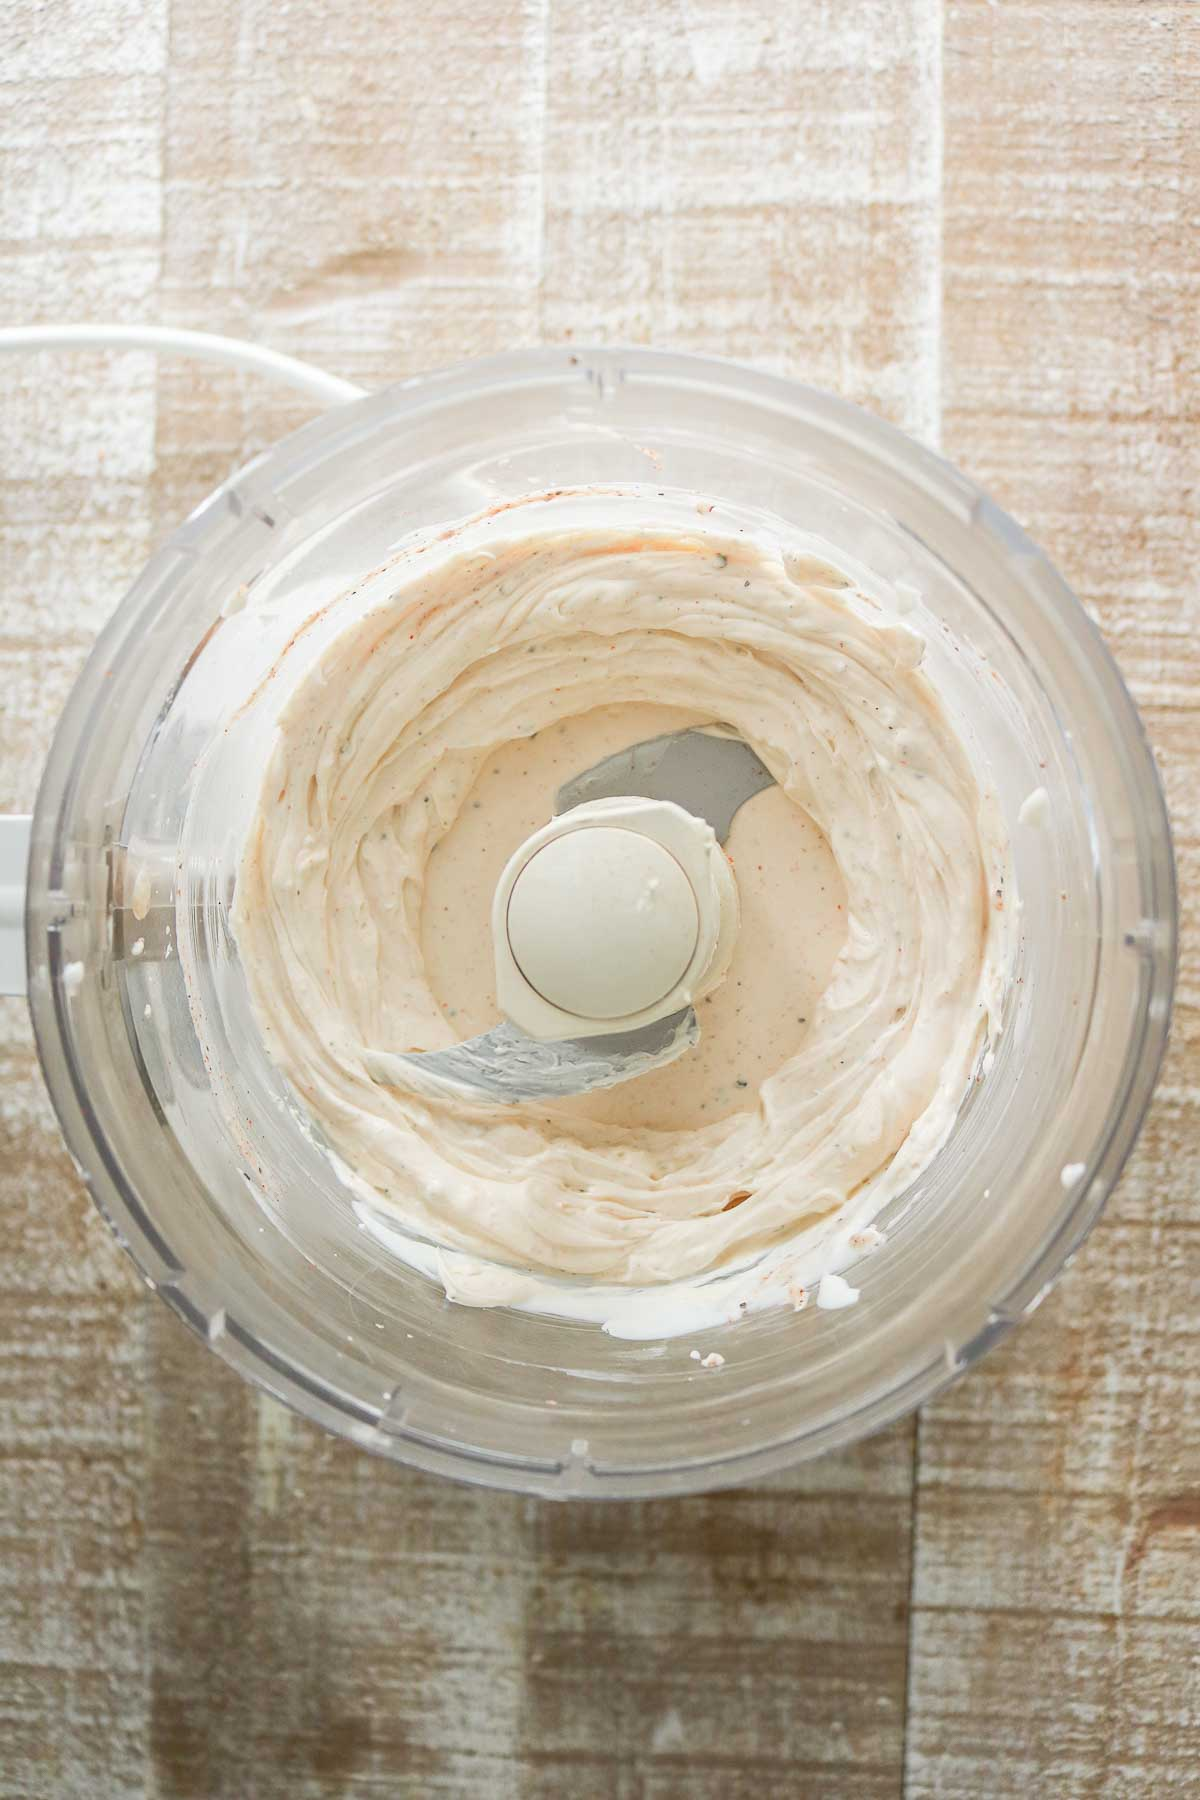 Cream cheese mixture blended up in a food processor.